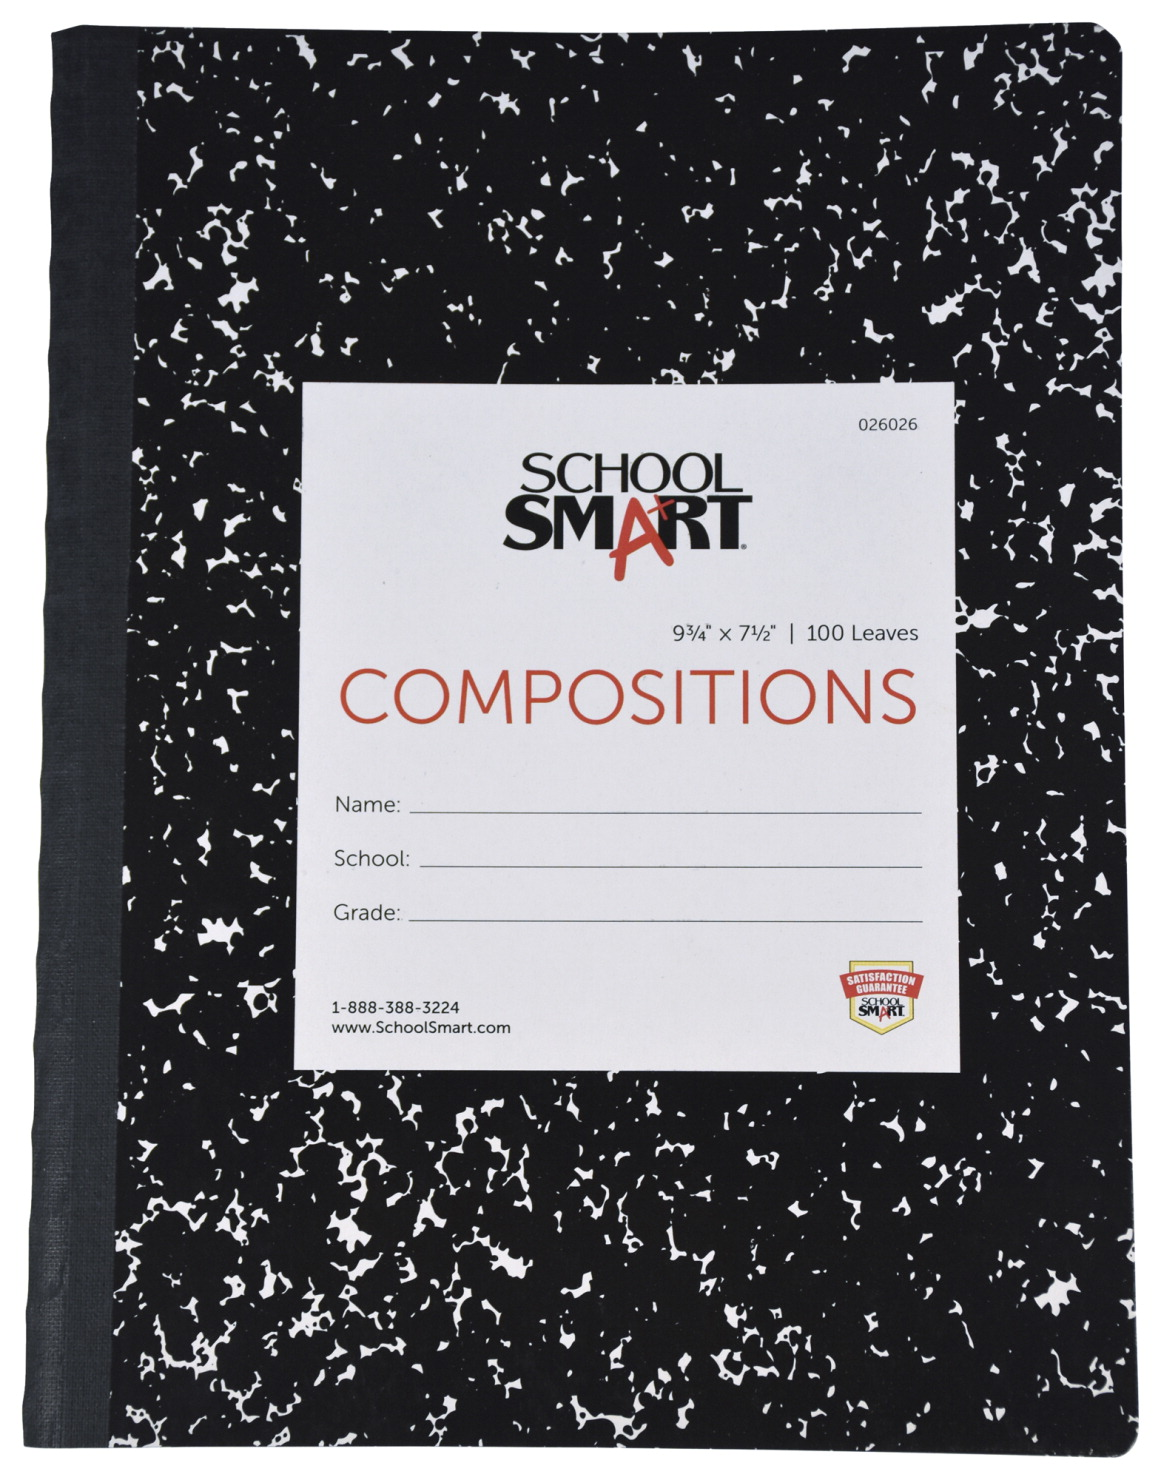 School Smart Semi-Stiff Ruled Composition Book, 9-3/4 x 7-1/2 Inches, 100 Sheets